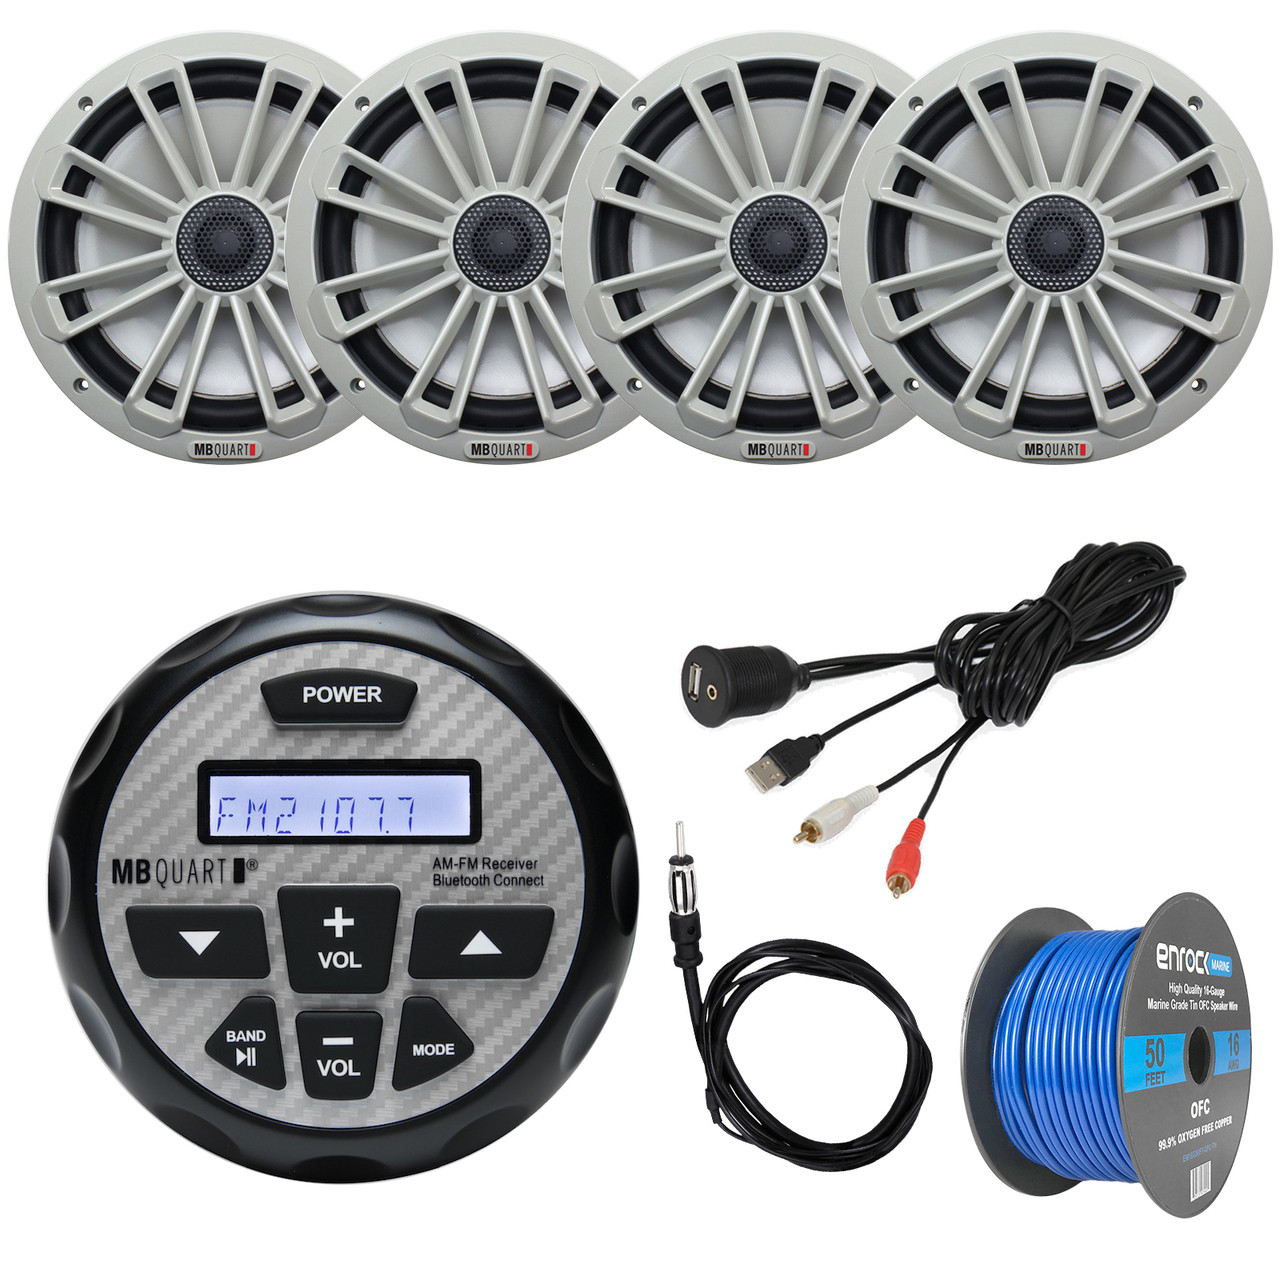 hight resolution of bay boat audio package mb quart gmr 2 5 waterproof am fm bluetooth gauge source unit receiver 2x 8 2 way coaxial marine speakers pair silver